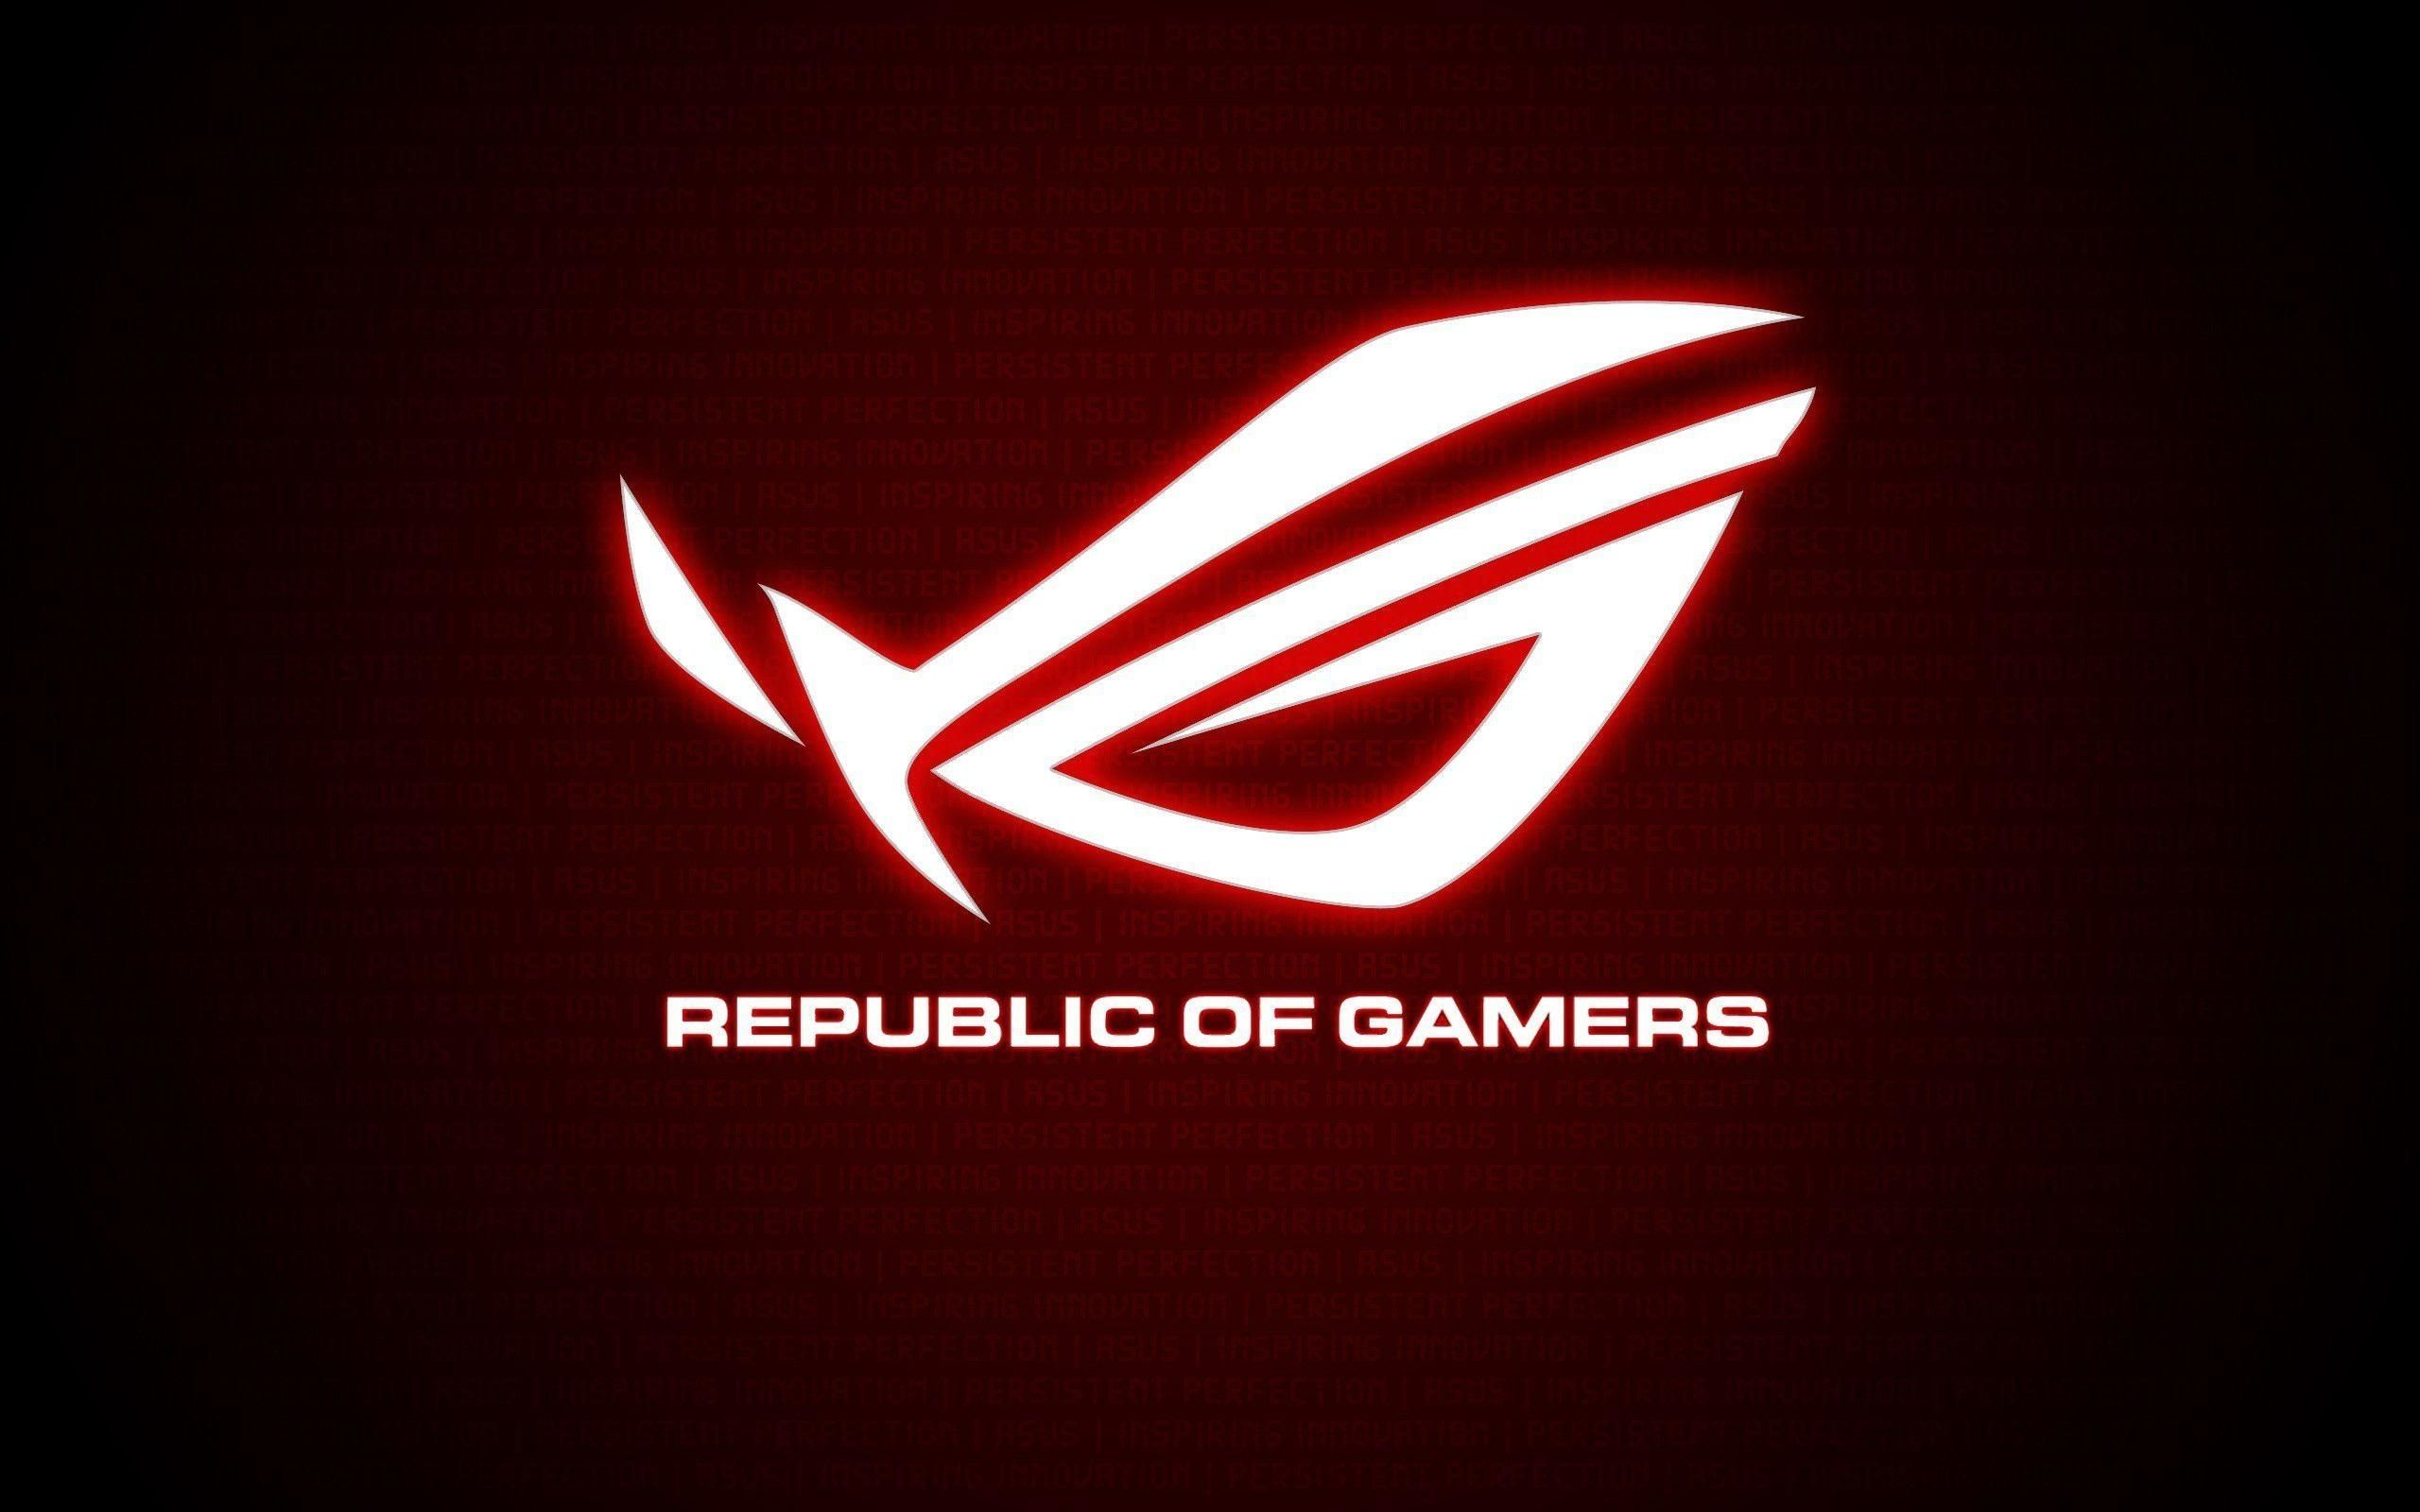 10 Latest Republic Of Gamers Screensaver Full Hd 1920 1080 For Pc